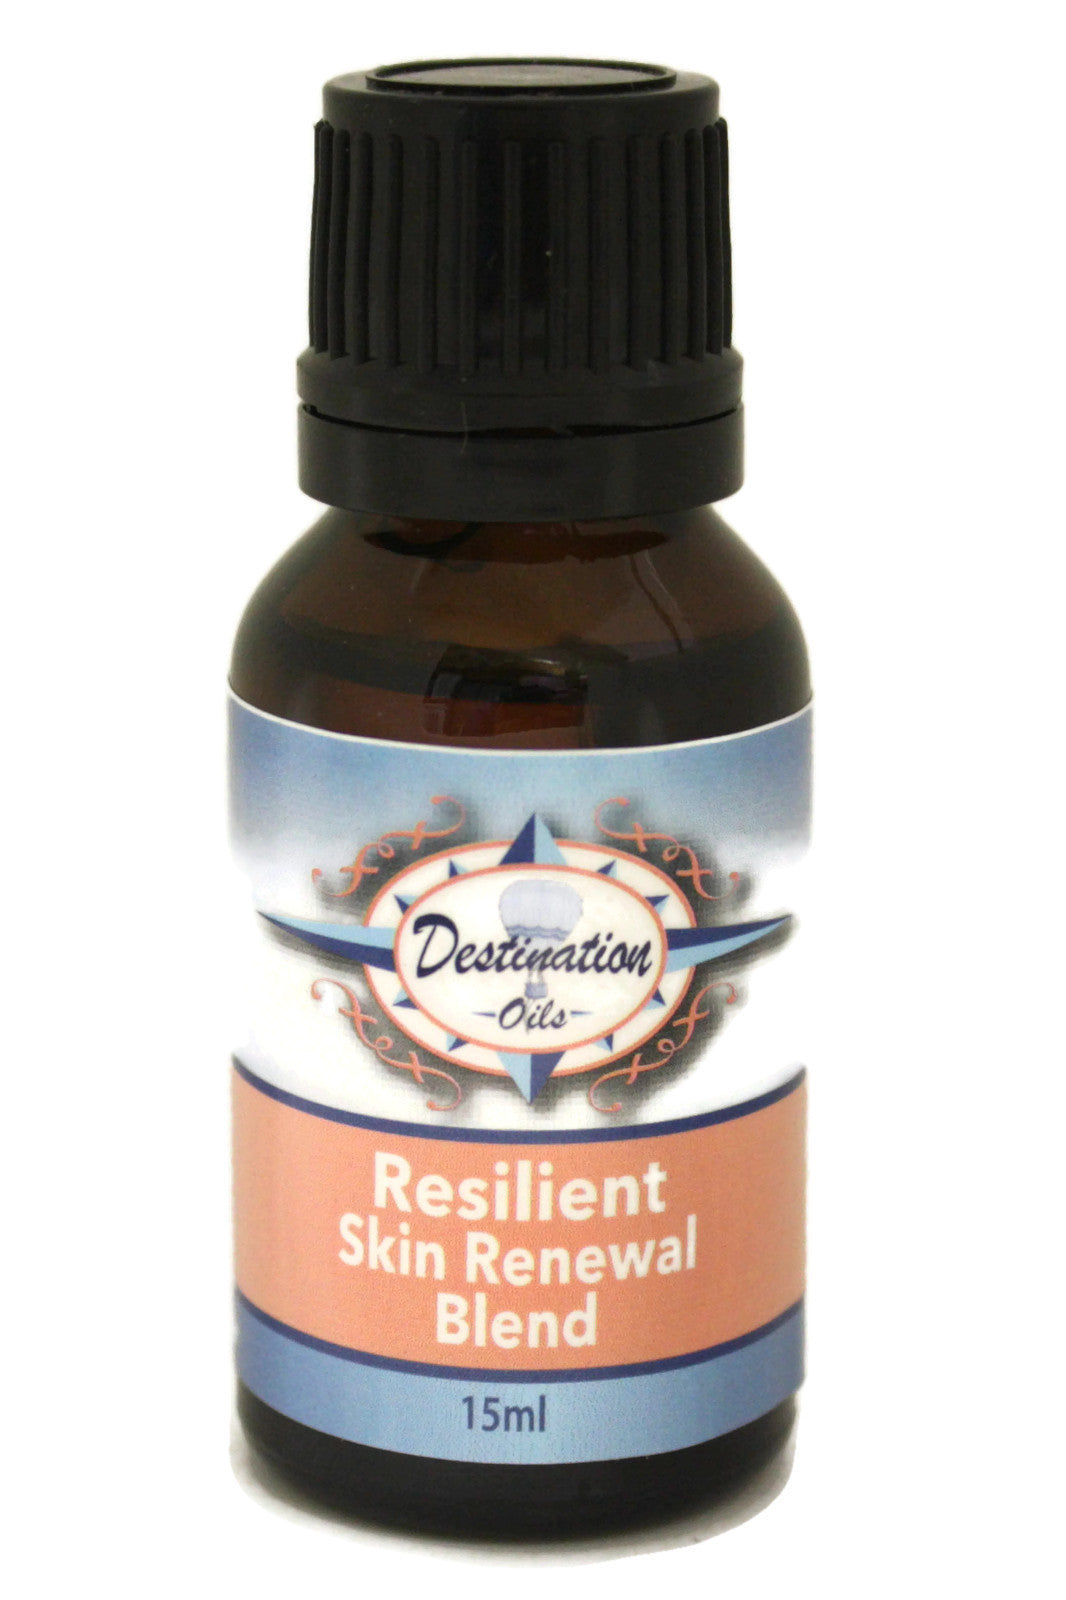 Resilient - Skin Renewal Essential Oil Blend - 15ml-Essential Oil Blend-Destination Oils